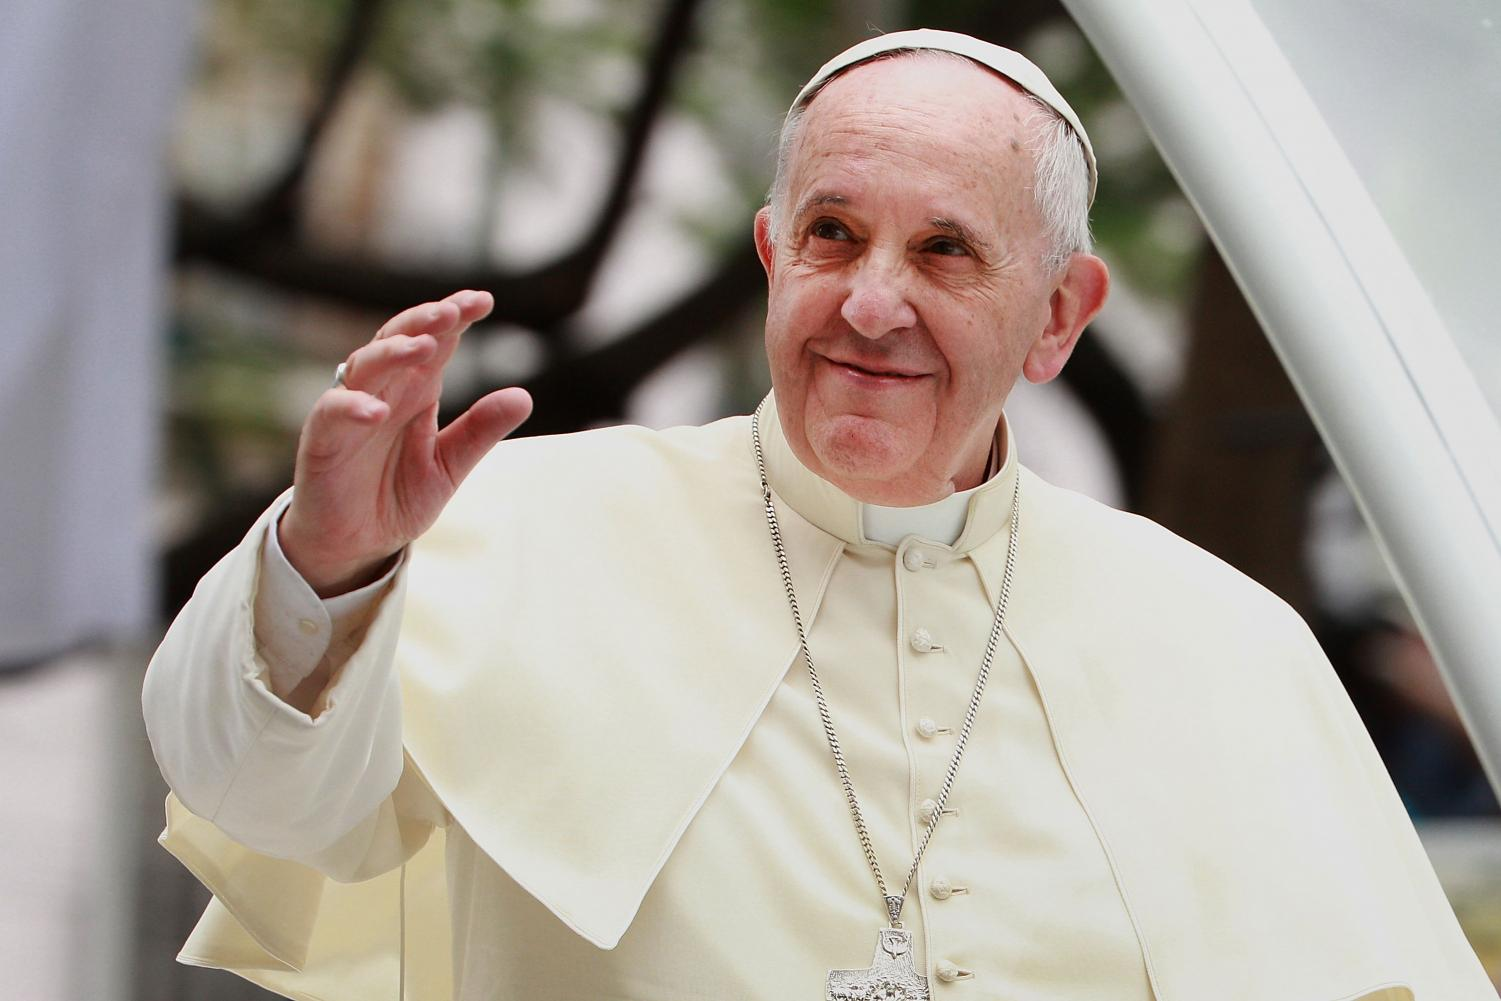 photo courtesy http://time.com/3671080/pope-francis-philippines-corruption-poverty/